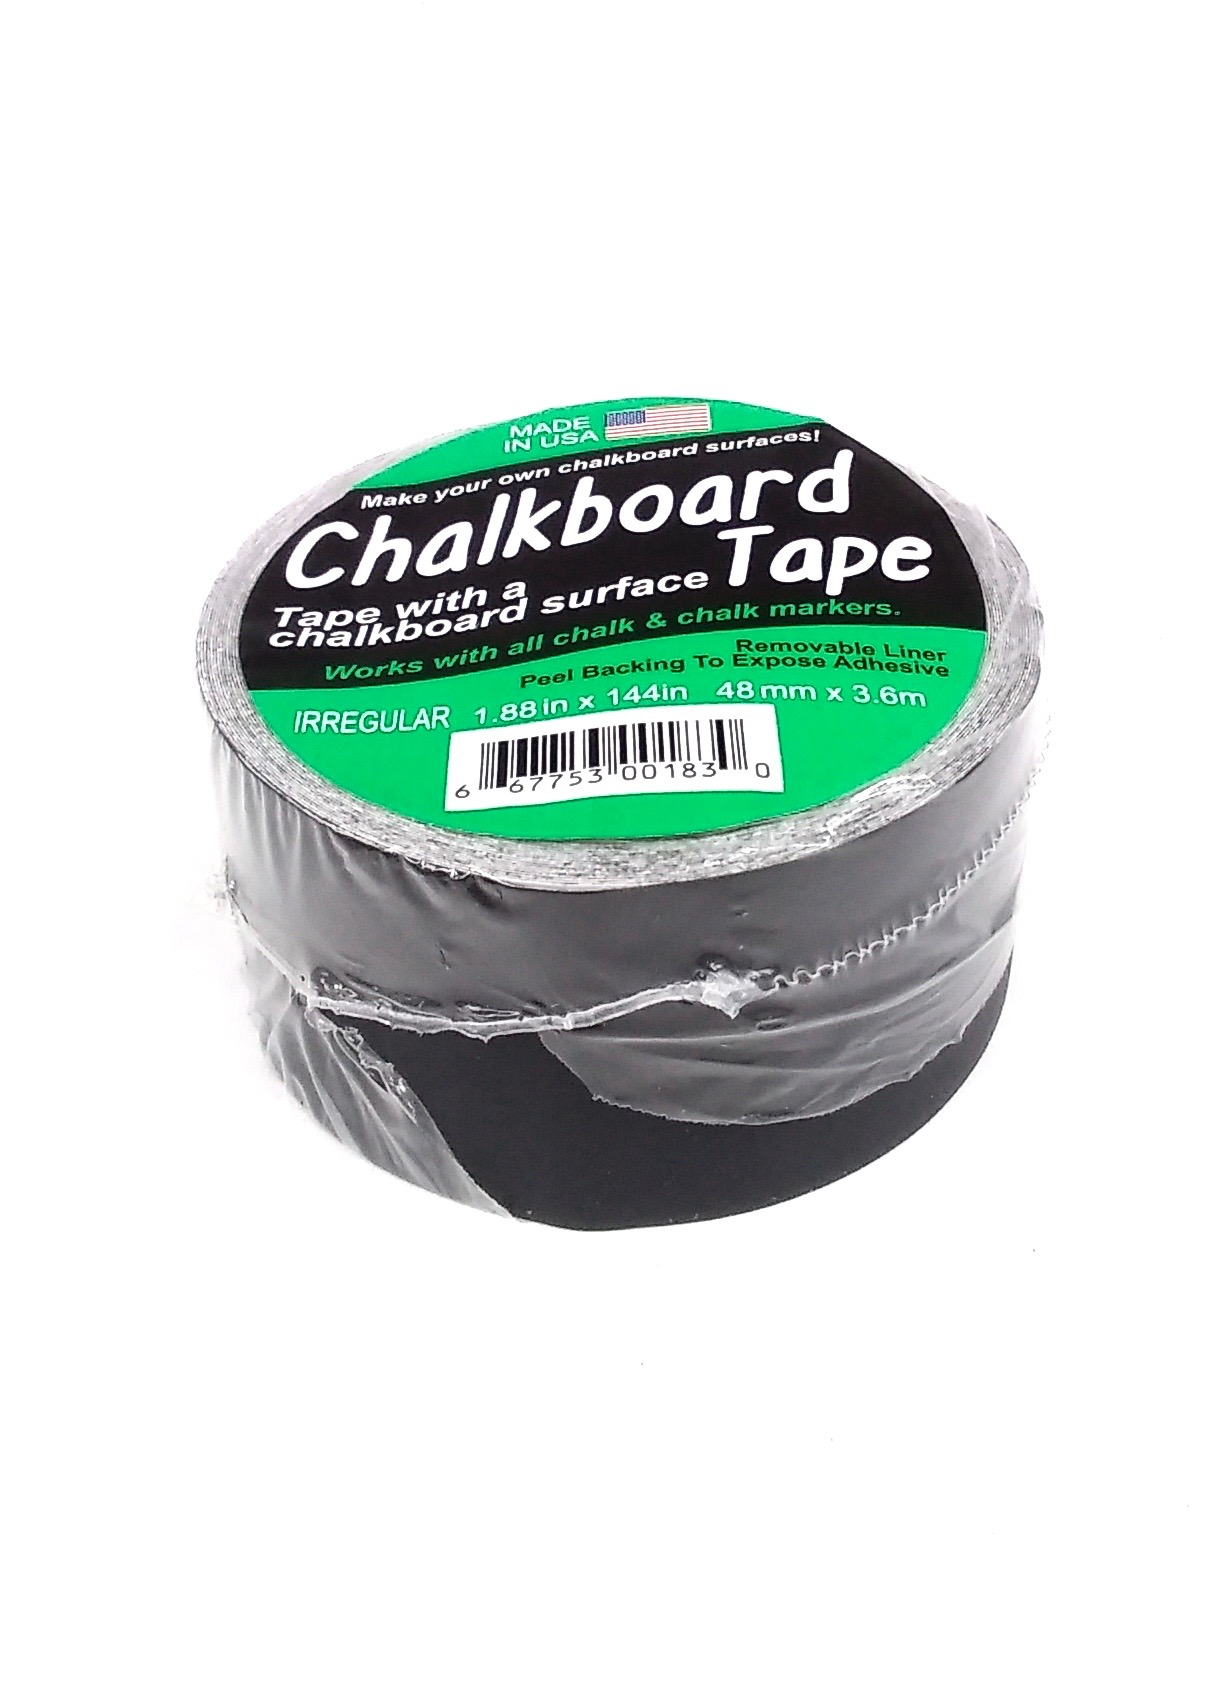 Duct Tape 10 Yard Chalkboard